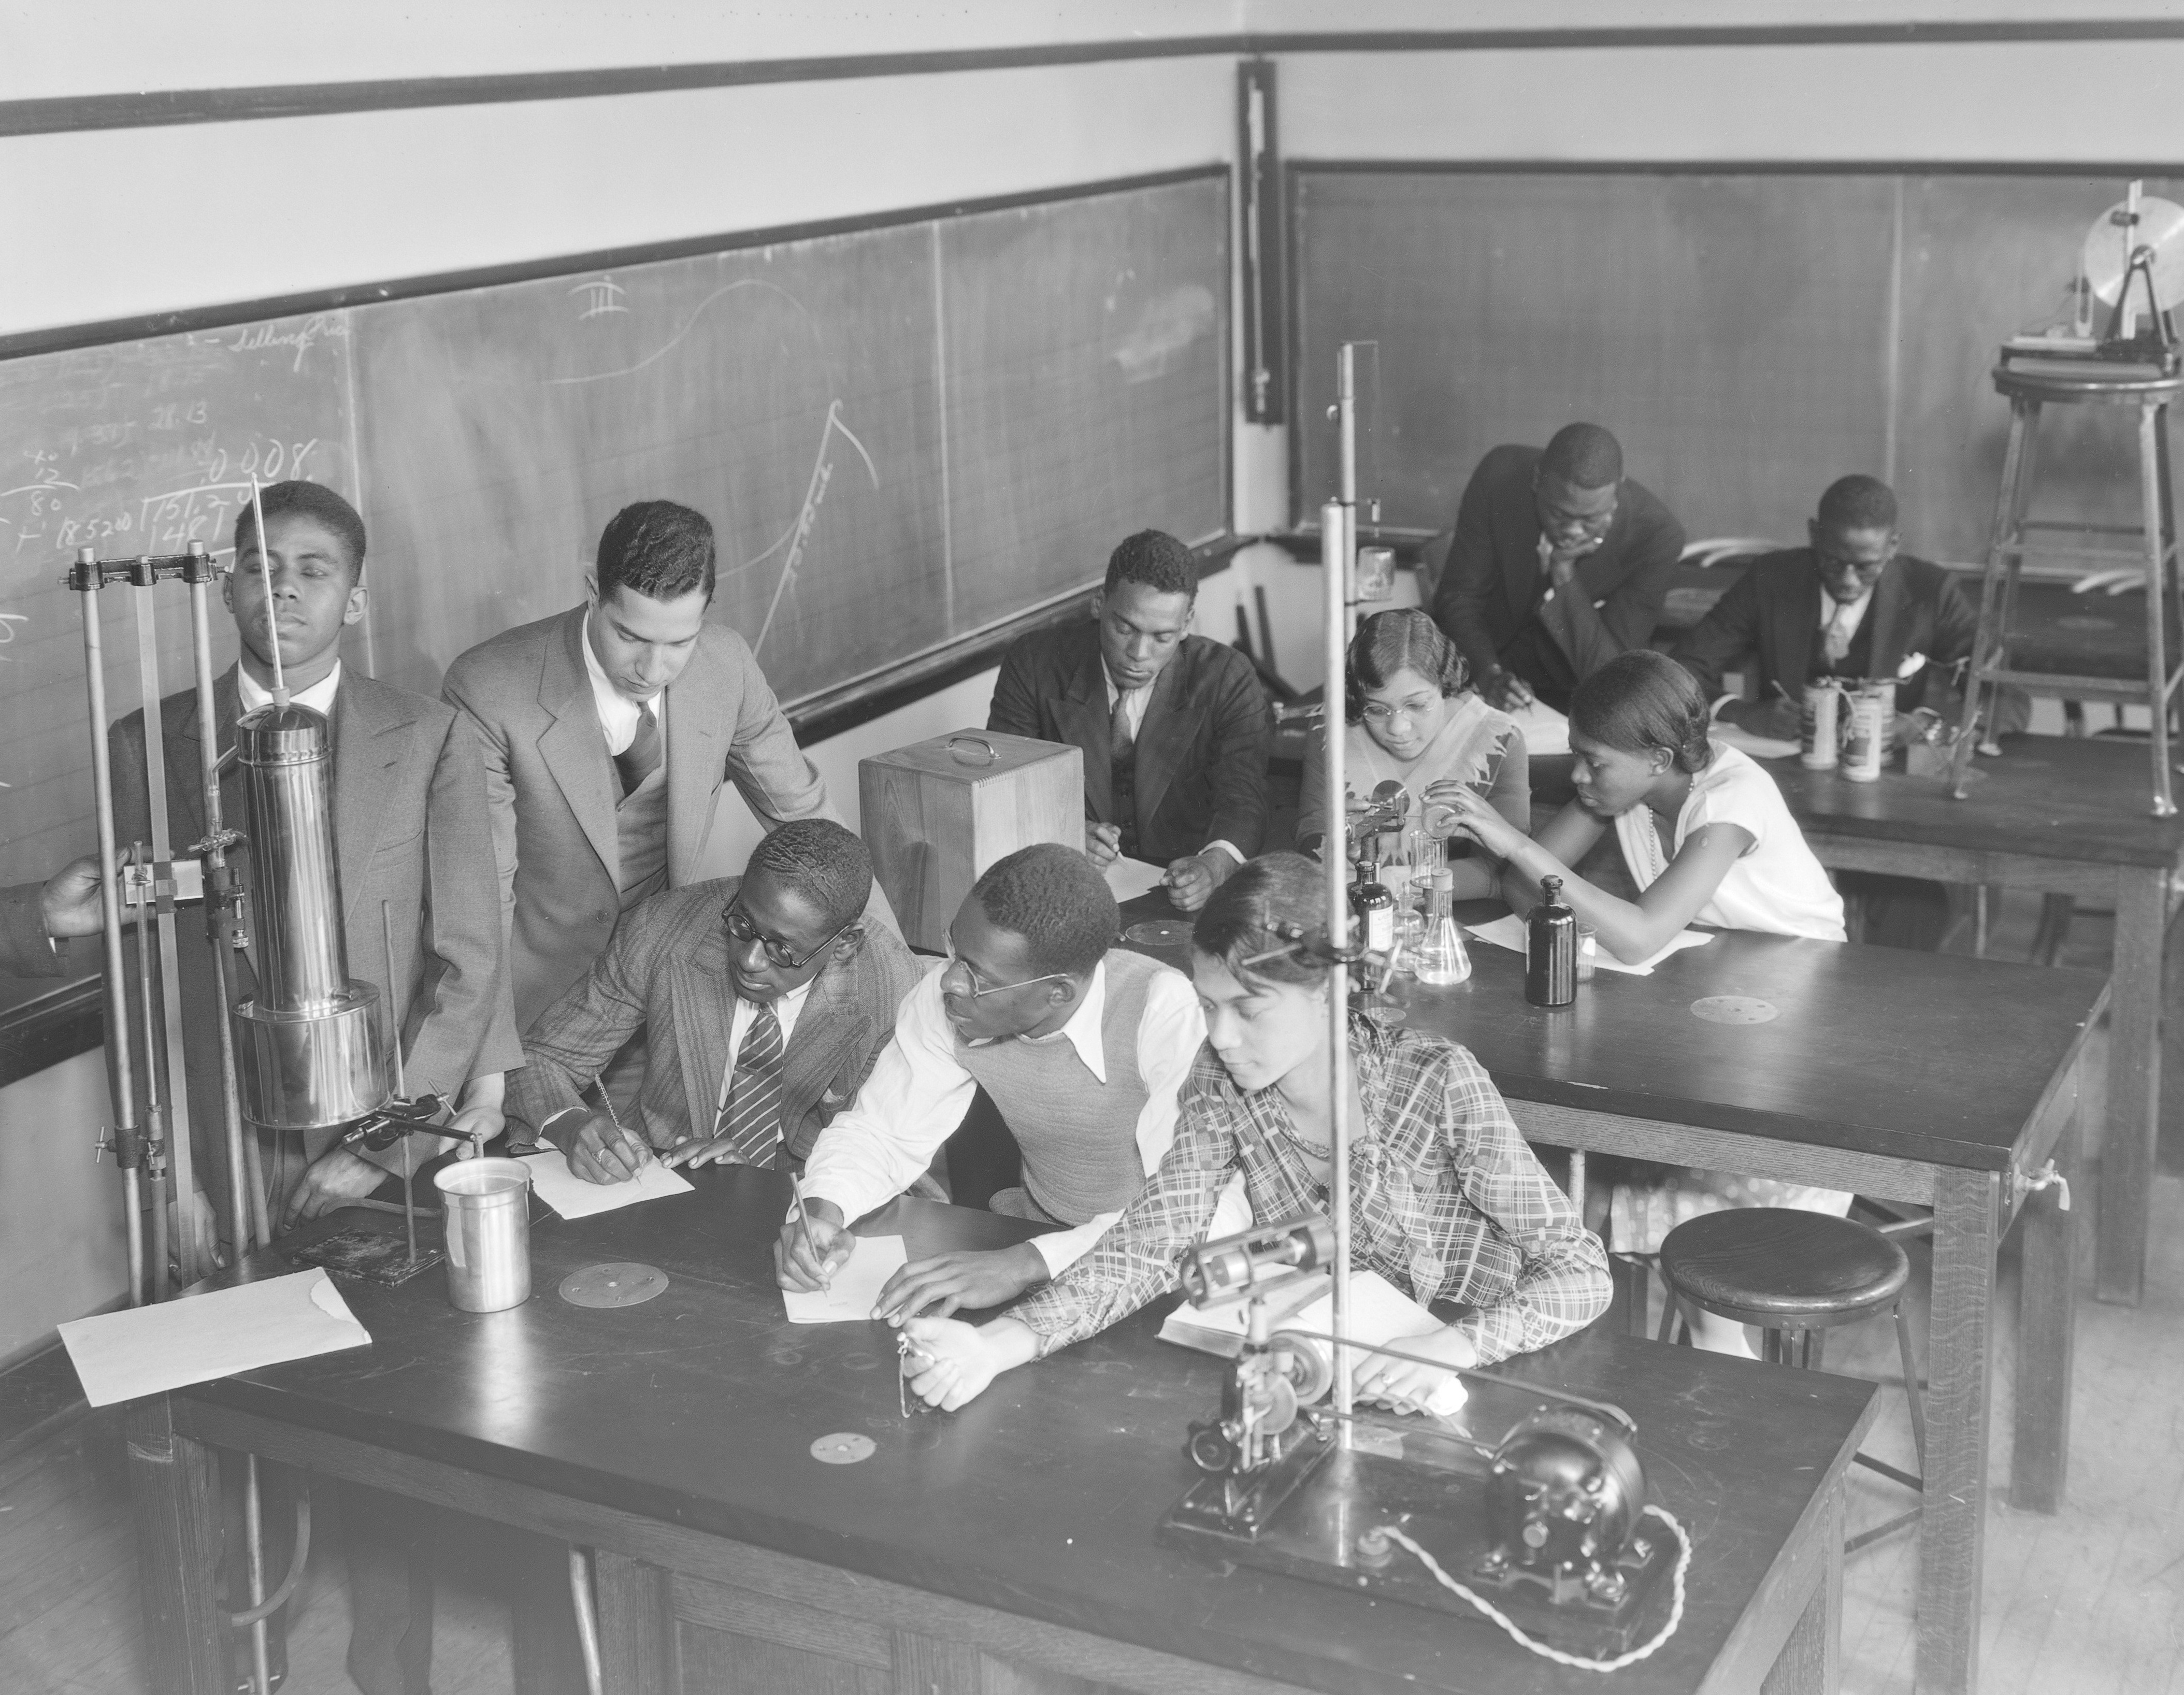 Physics students at Stowe Teachers College in The Ville working on a class project, 1931.